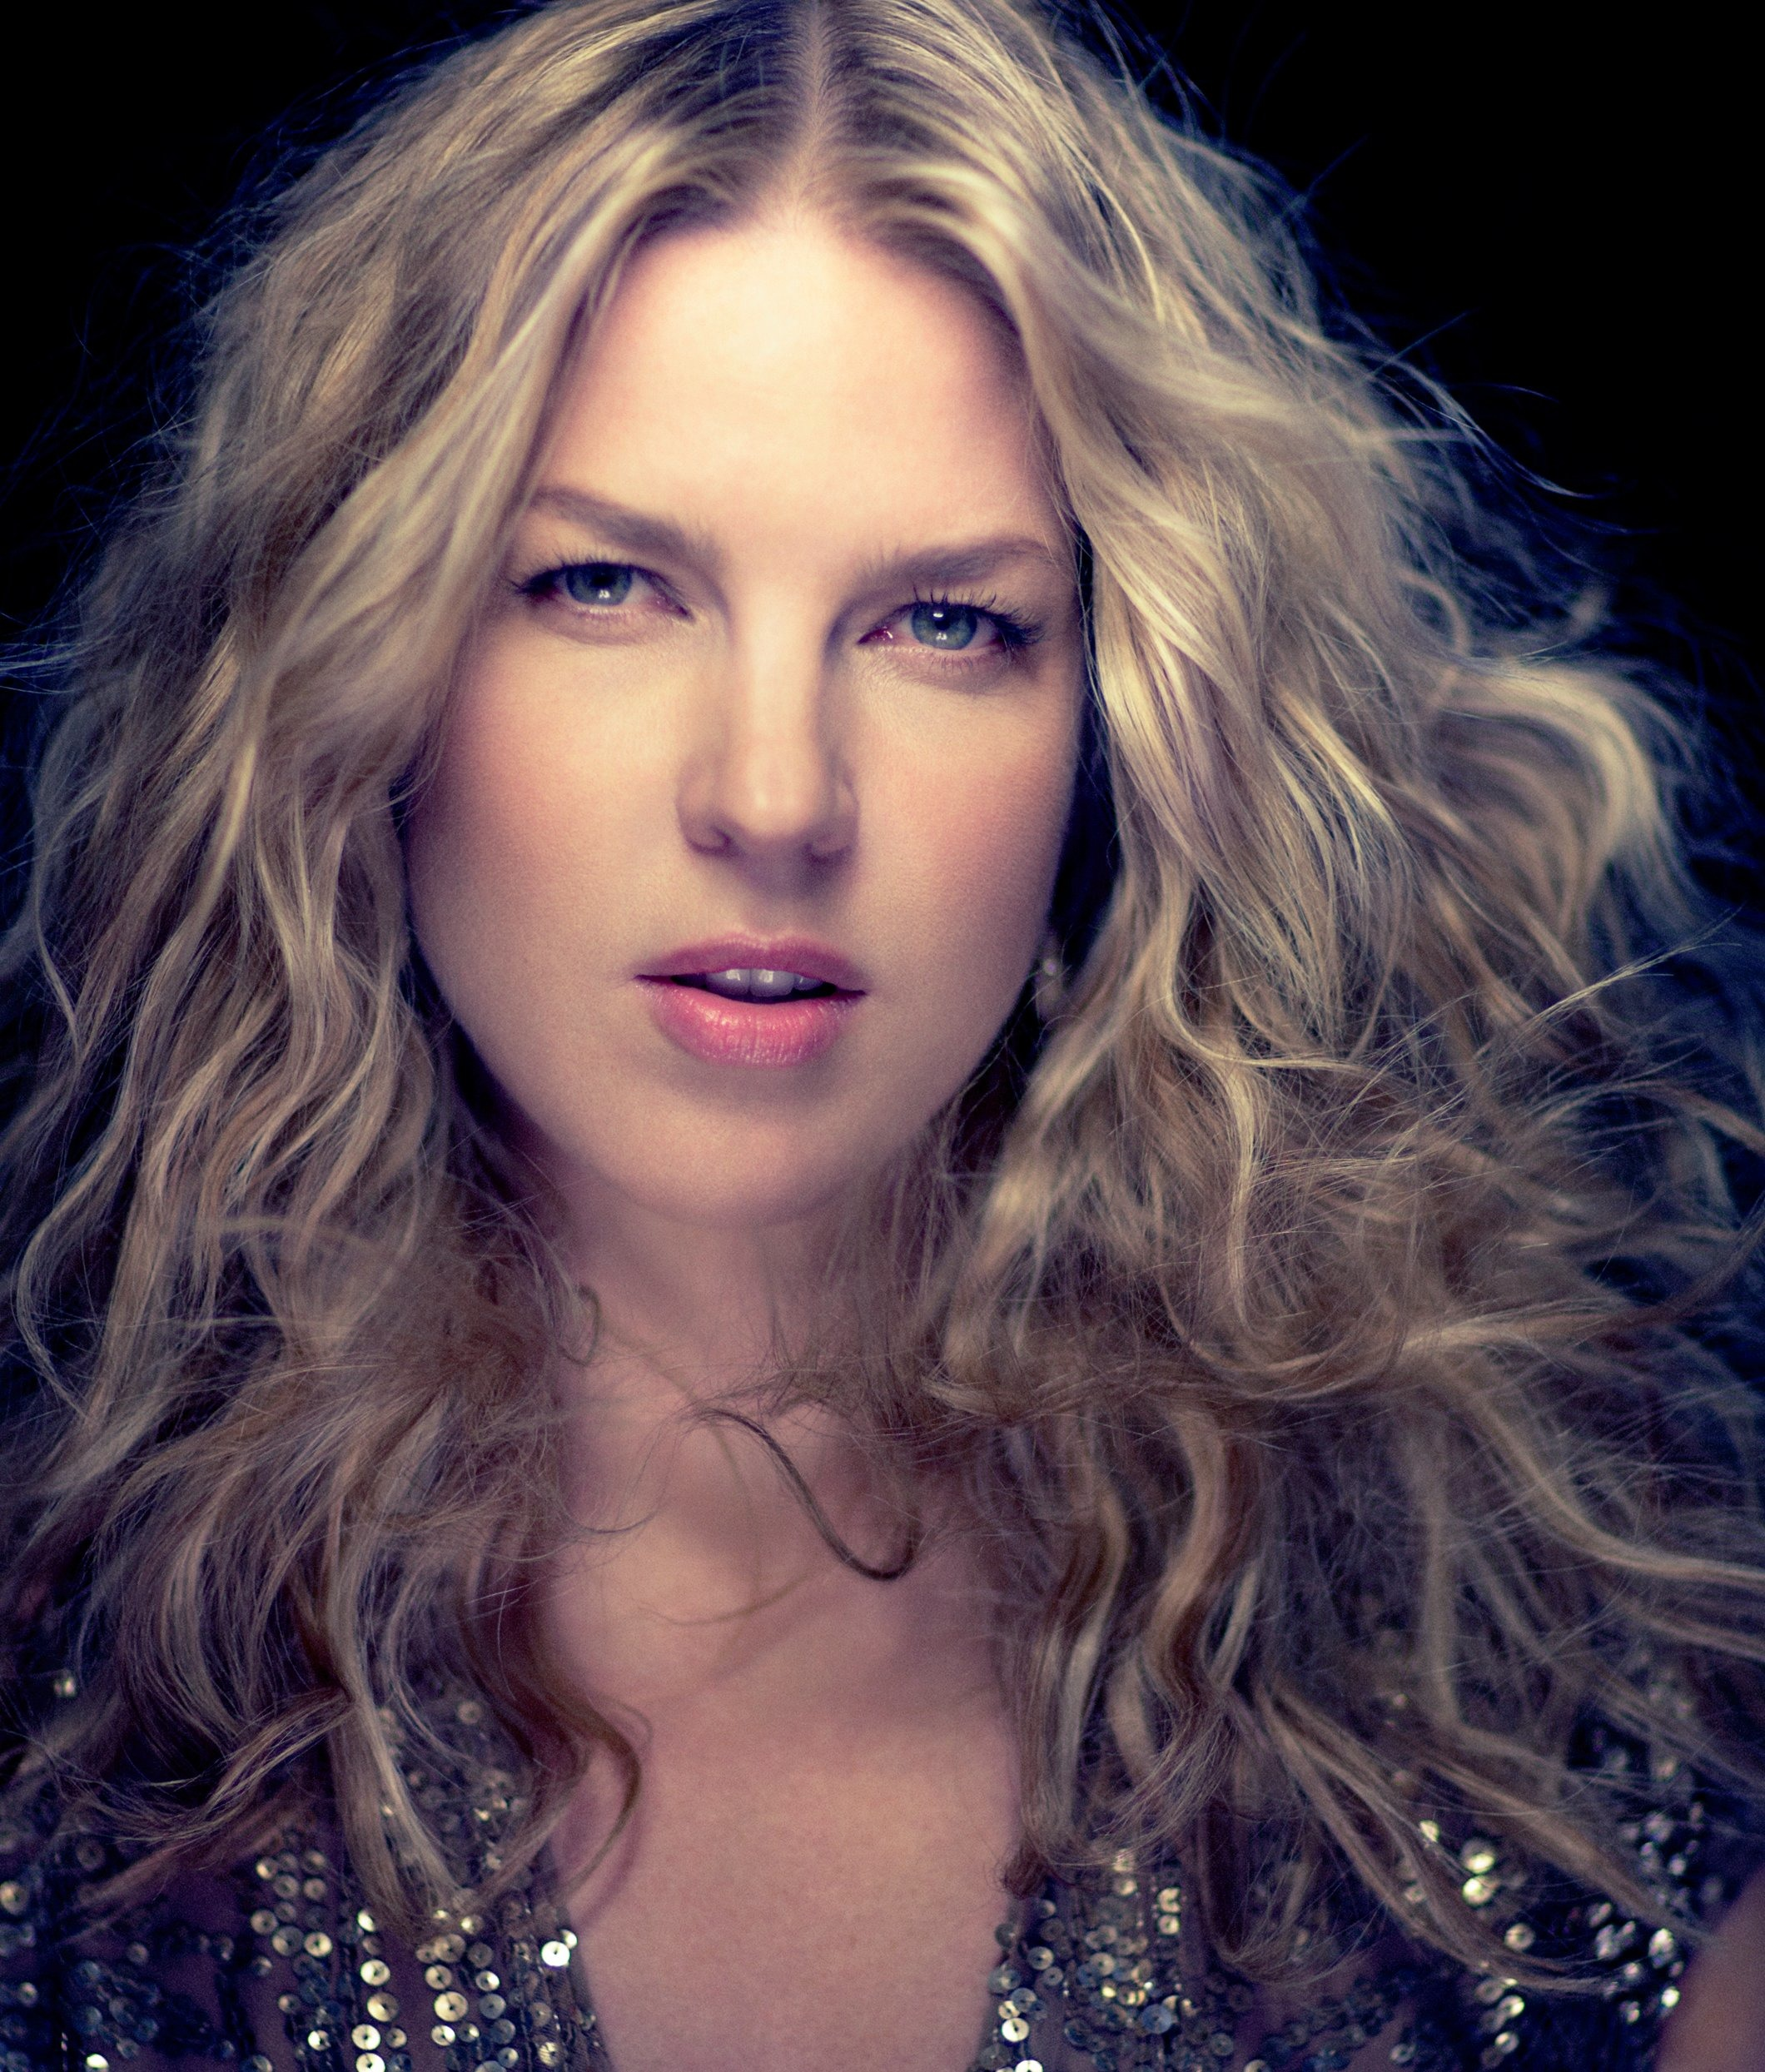 Stay Current with the Pick of the Day: Diana Krall